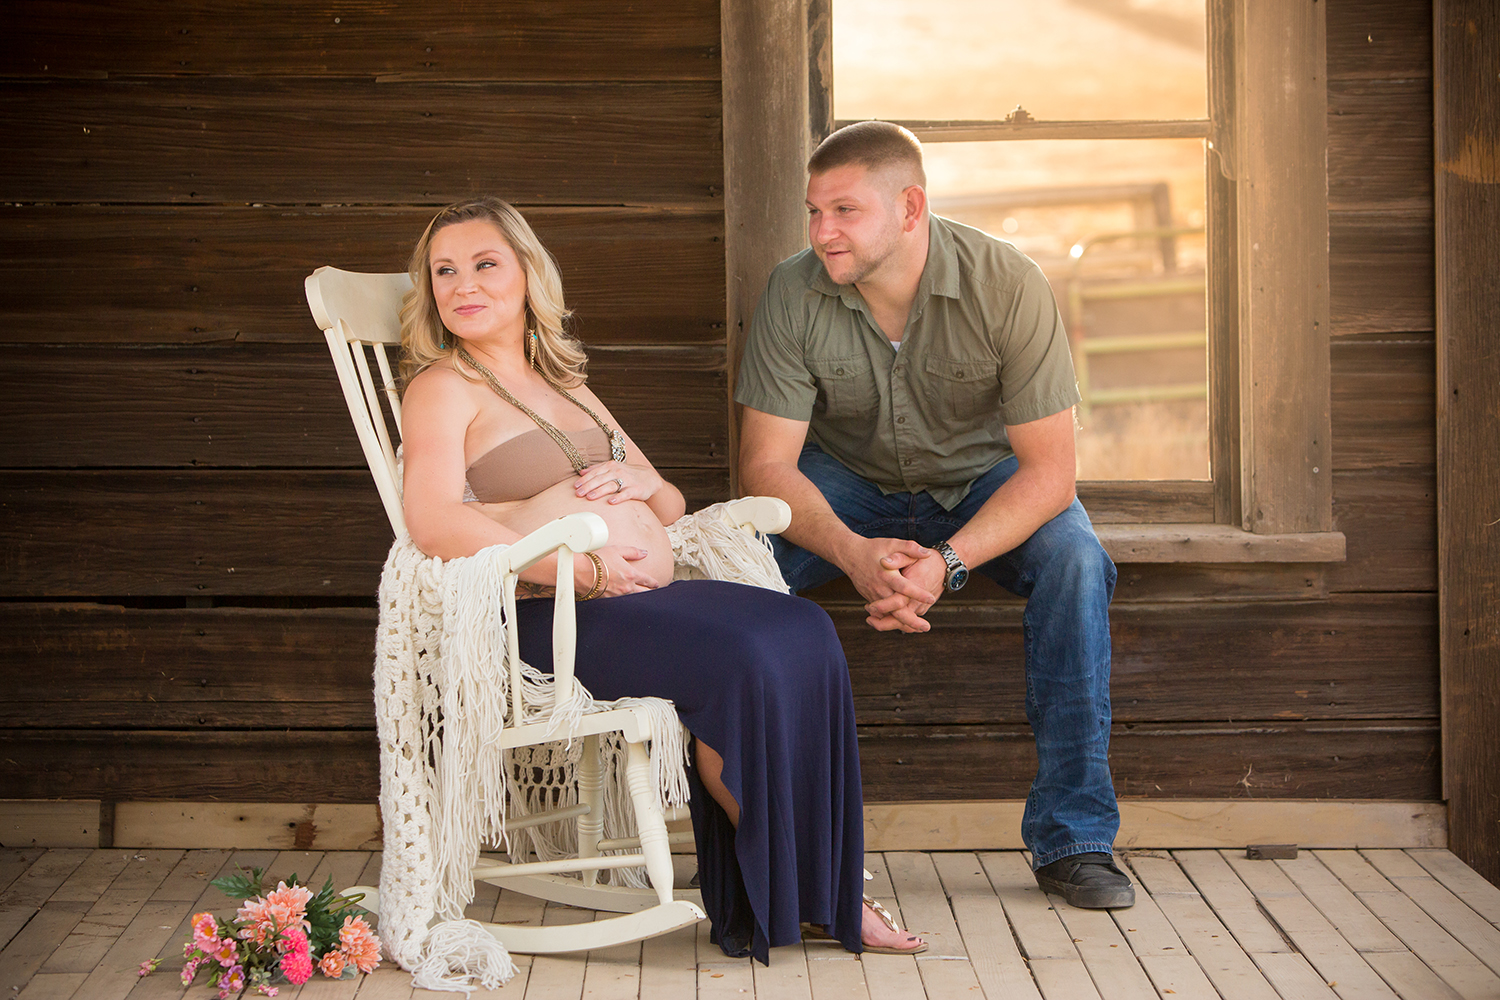 Dena_Rooney_Maternity_Portraits_016.jpg